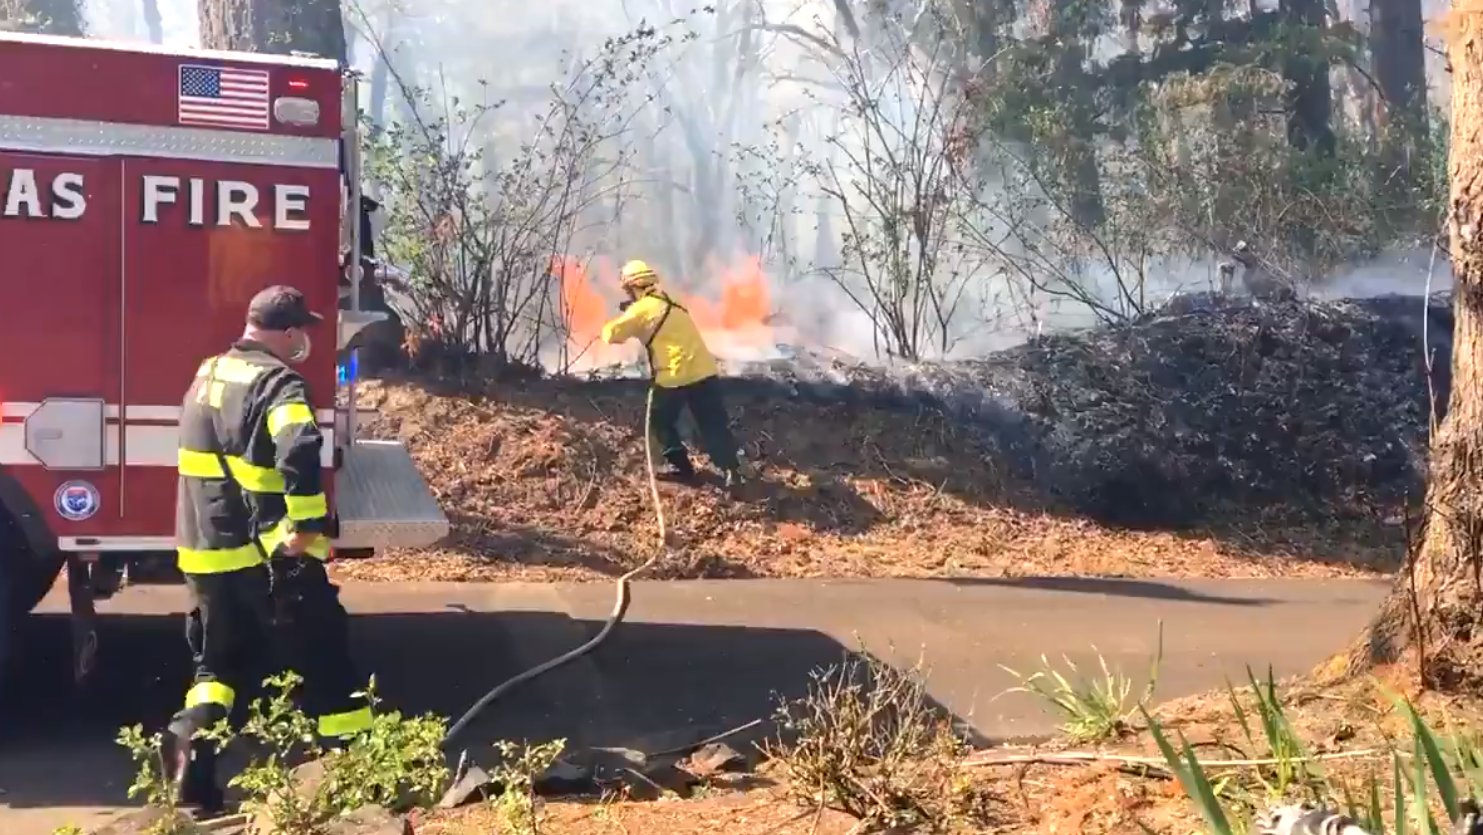 Brush fire prompts 'Go now' evacuations in Clackamas County